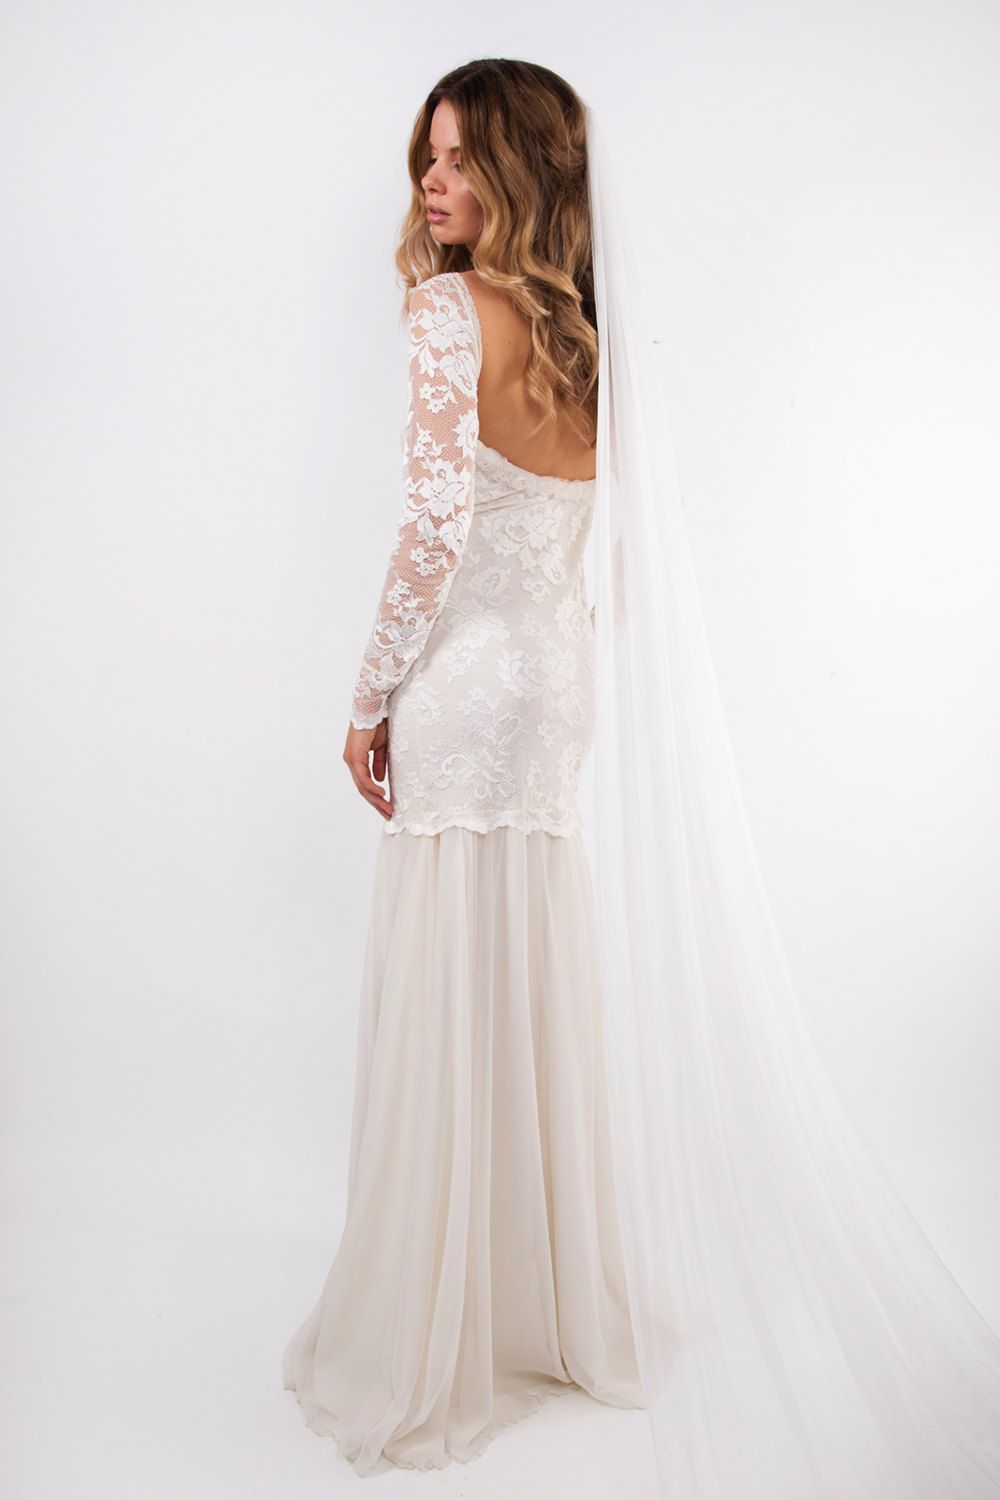 Wedding dress lace sleeves  Grace loves lace lace wedding dress by Graceloveslace on Etsy